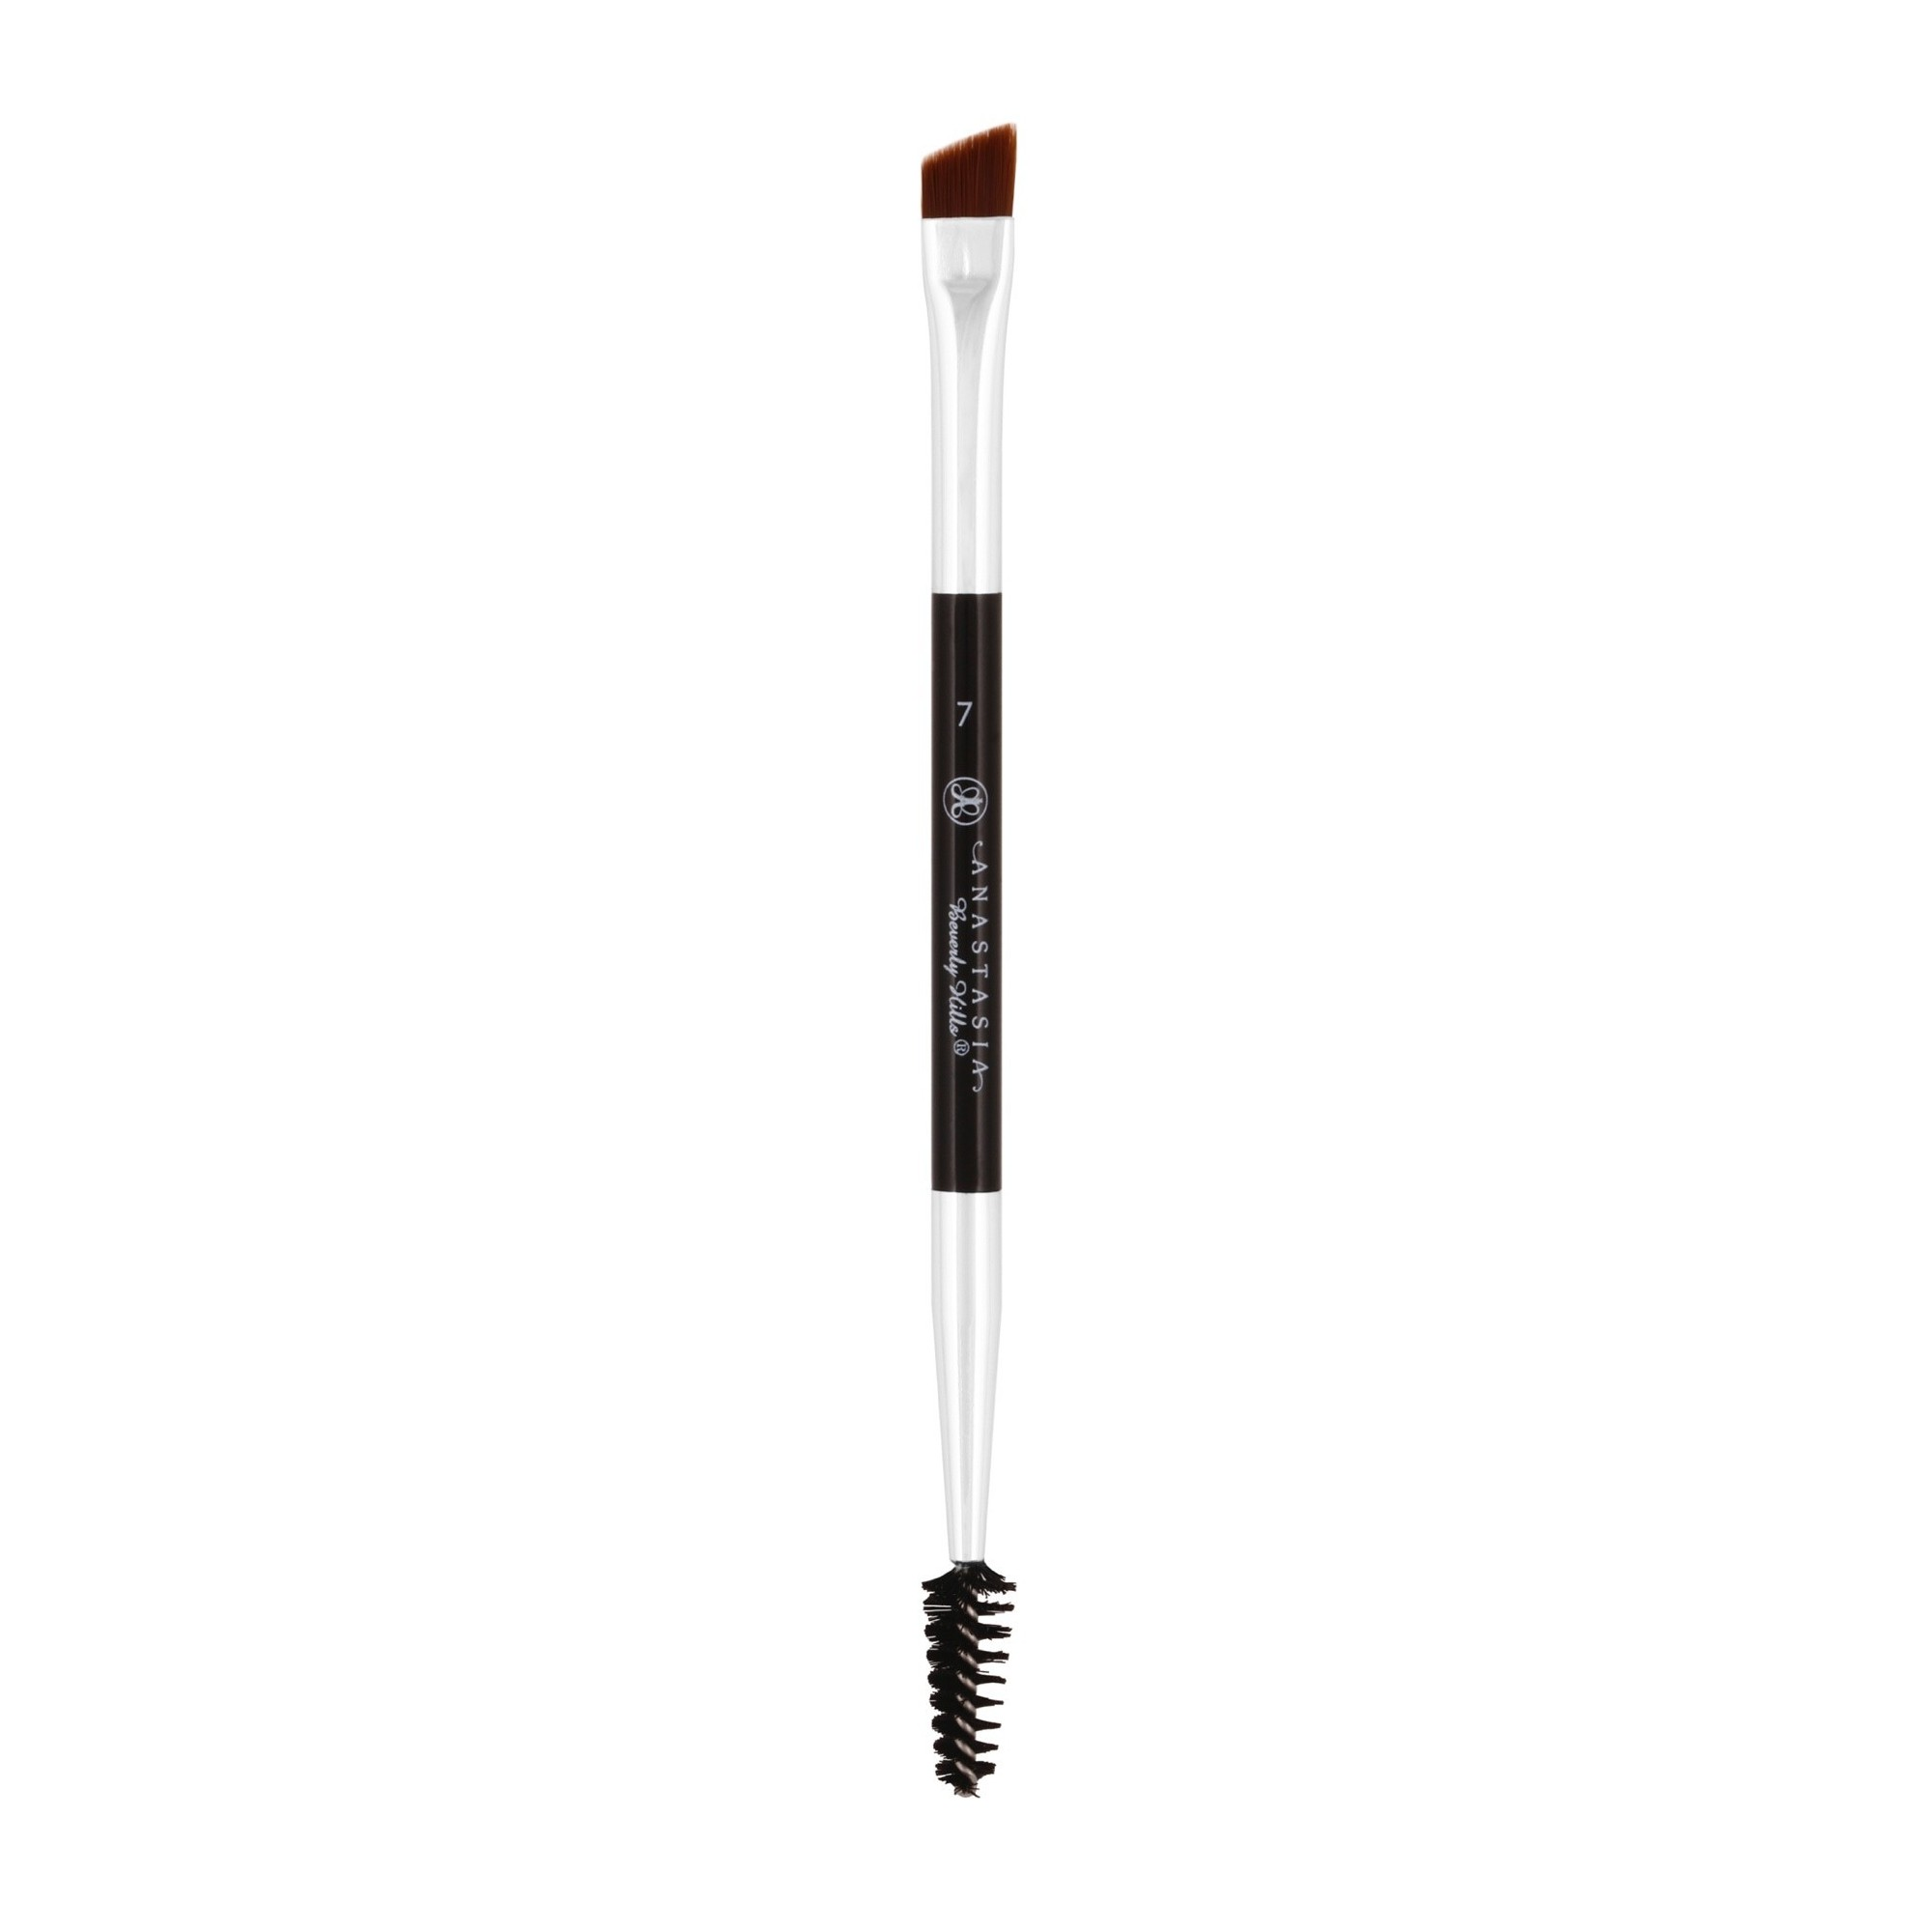 Anastasia Beverly Hills Duo Brush 7